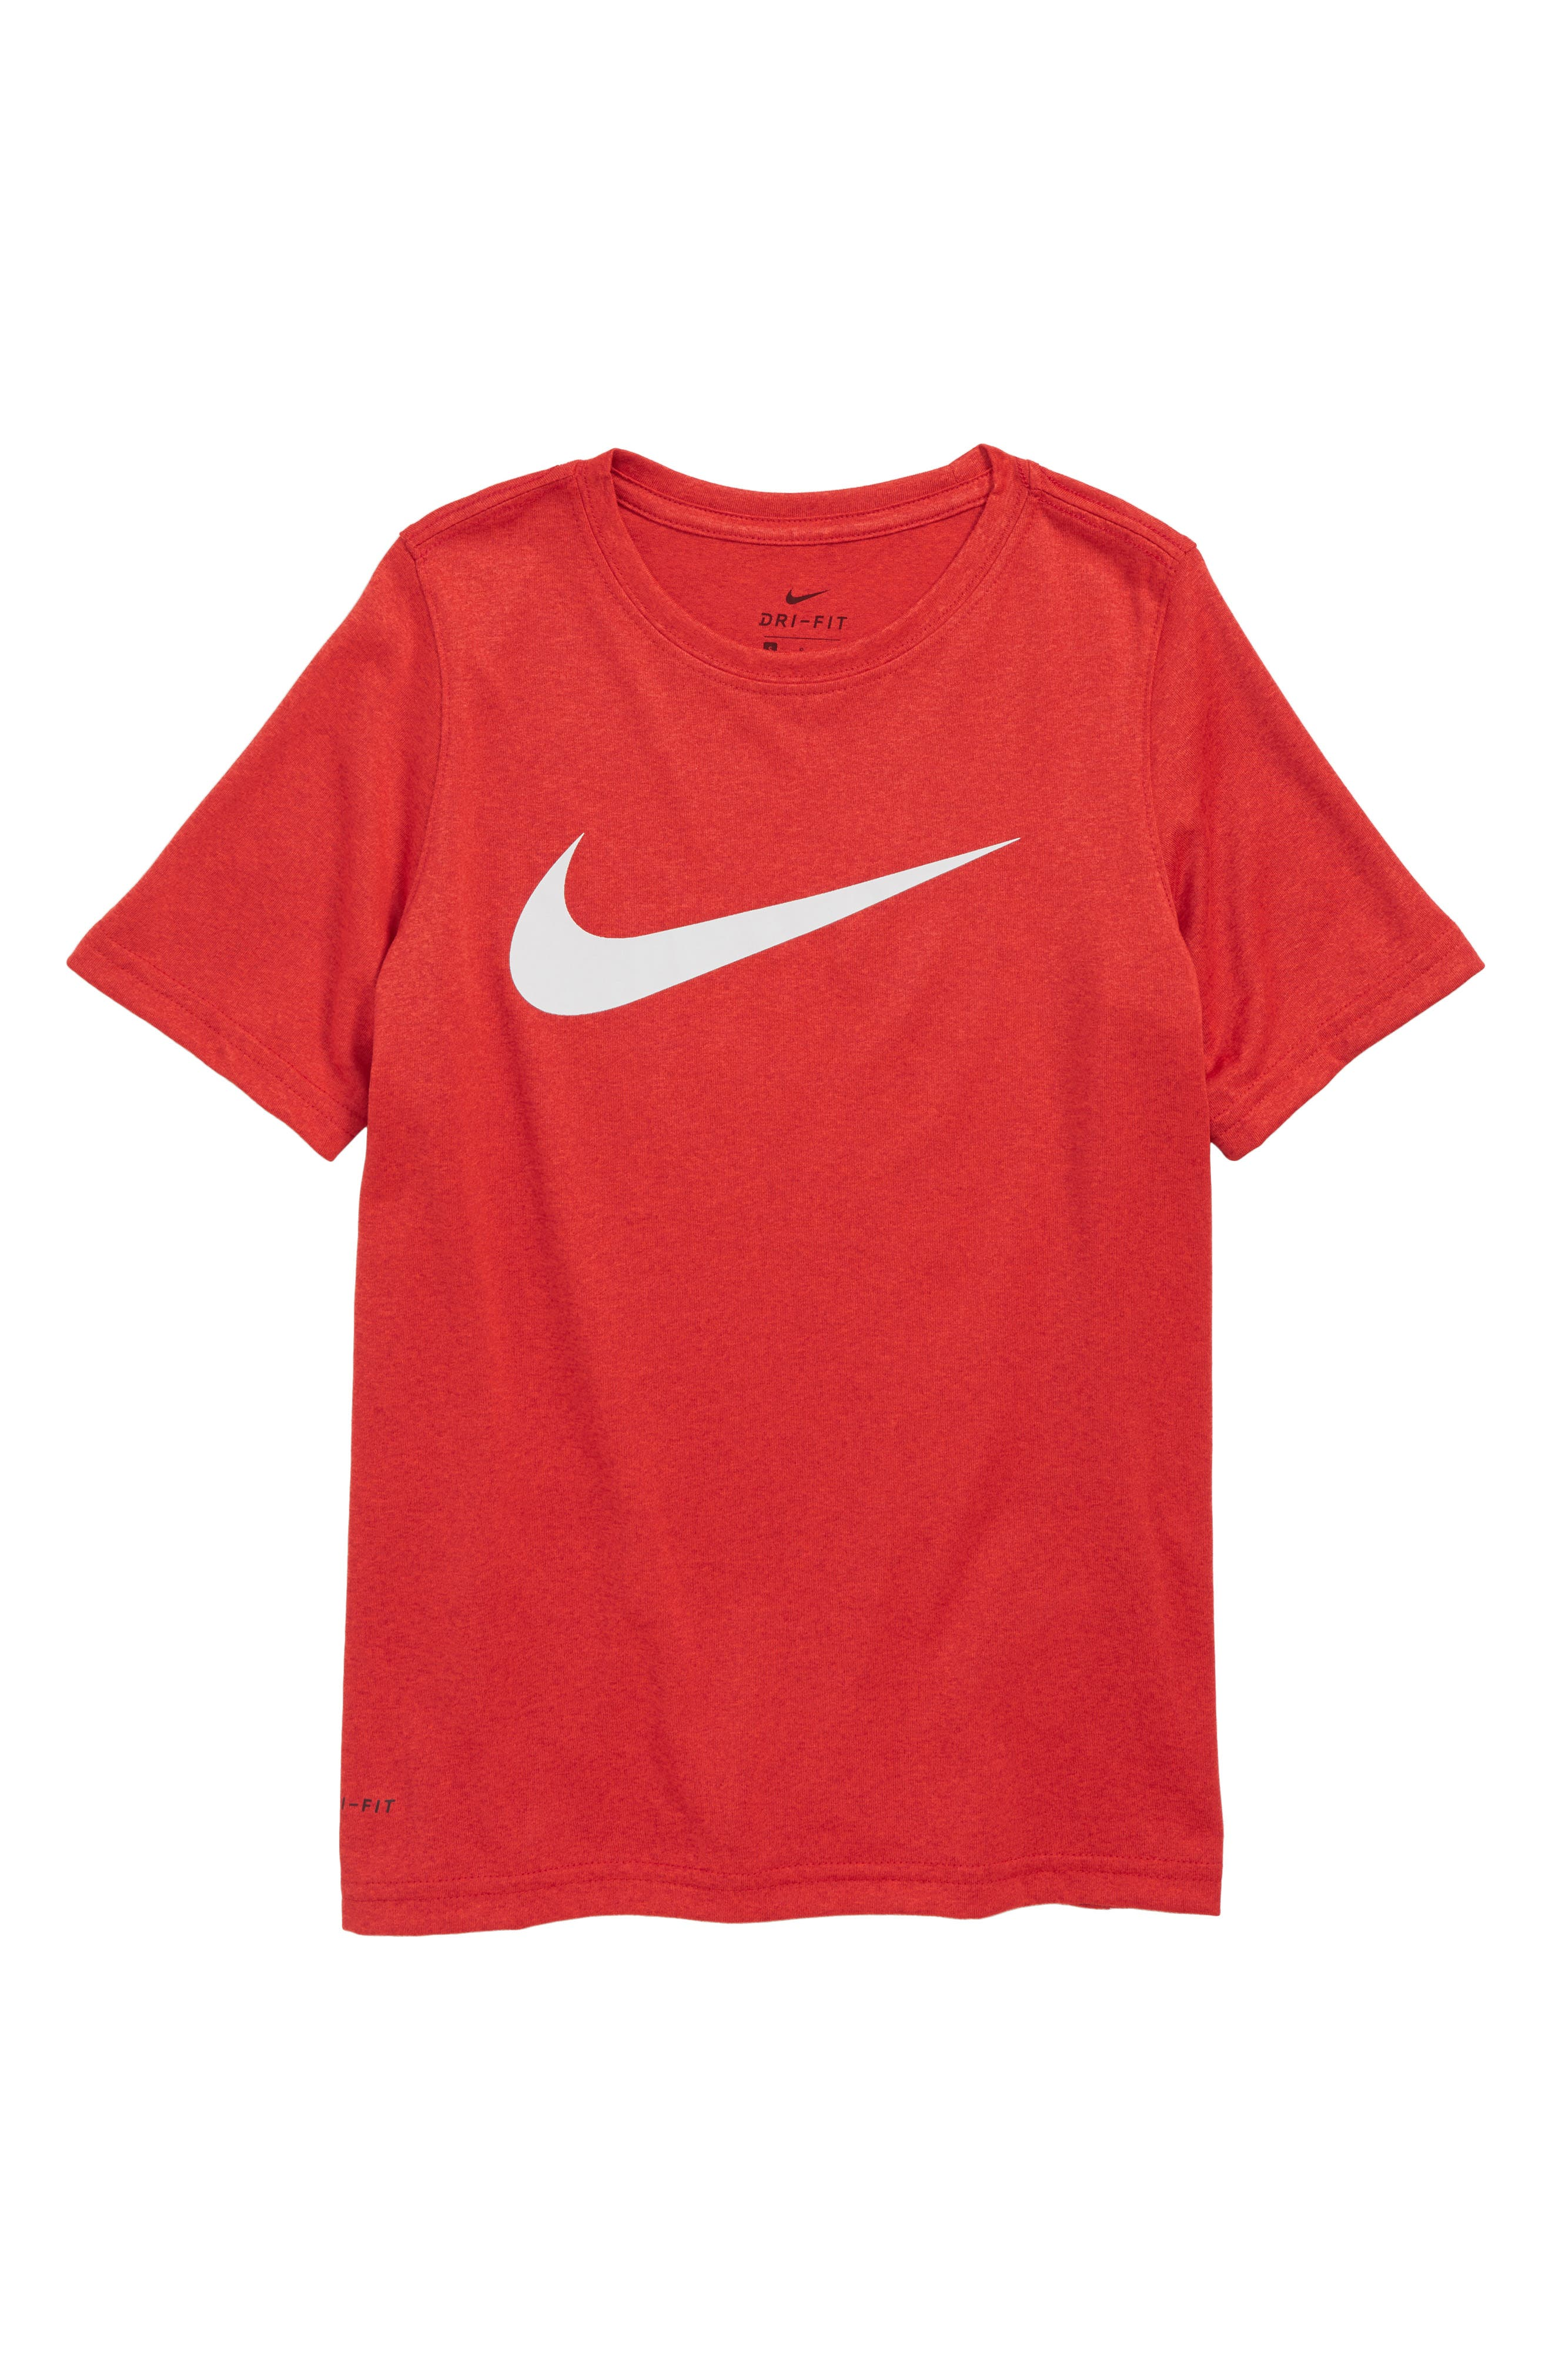 Dry Swoosh T-Shirt,                         Main,                         color, RED / WHITE